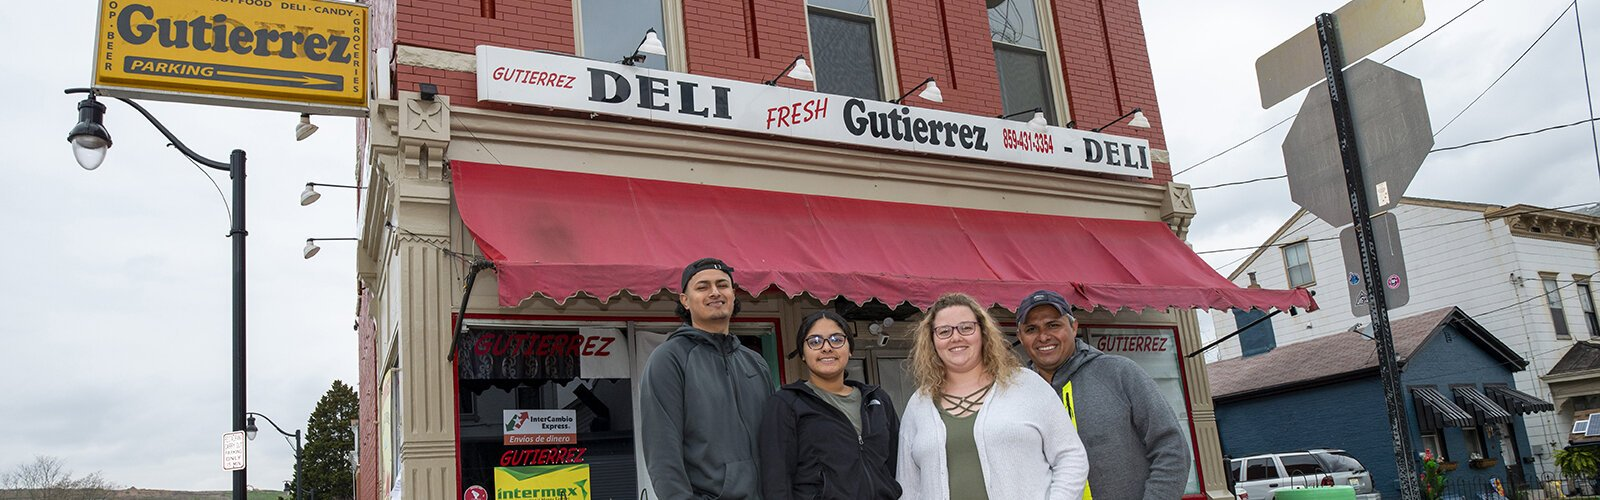 Gutierrez Deli has become a gathering place and resource for Covington's Latino residents. The Gutierrez family: Sergio, Evelyn, Courtney Case and Claudio.